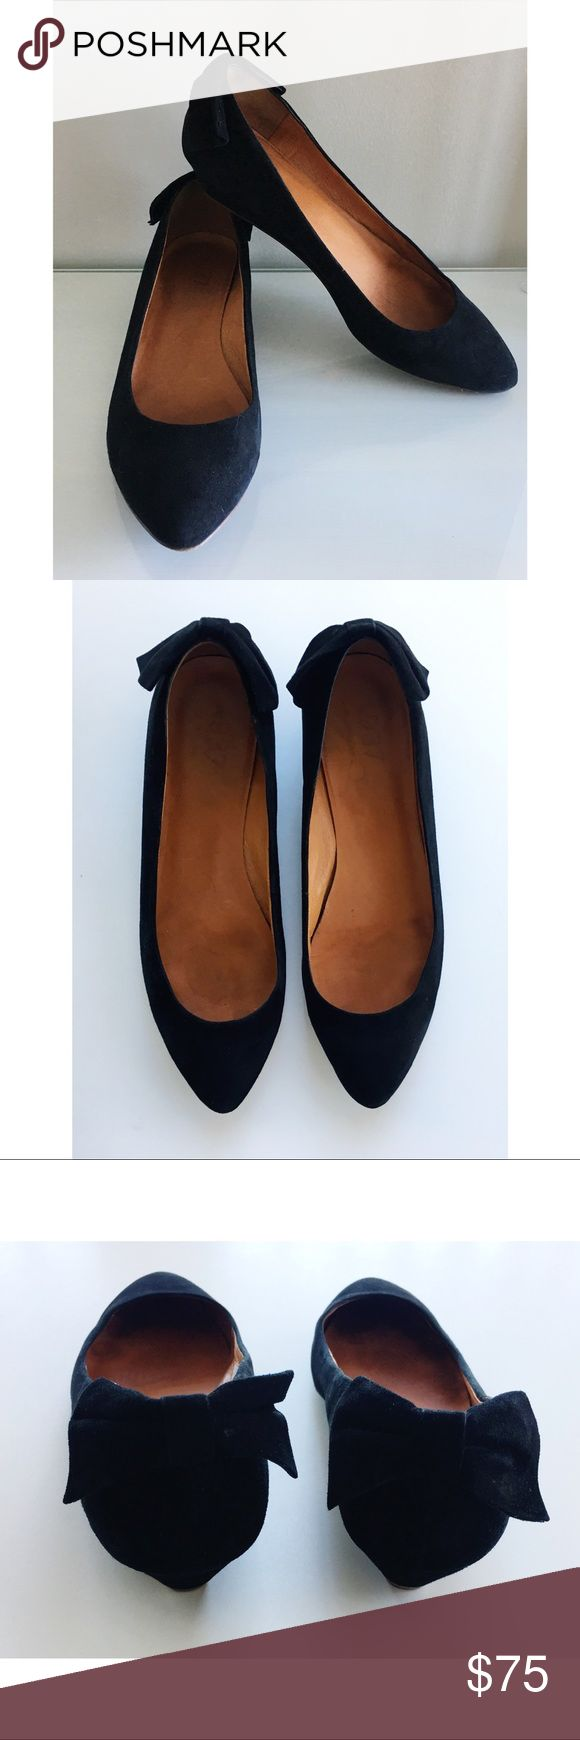 Madewell Bow Back Mini Wedge Black Suede 9.5 ITEM: The Bow Mini Wedge BRAND: Madewell COLOR: Black  SIZE: 9.5 CONDITION: very lightly pre-loved! well-cared for MATERIAL: suede upper, man made sole MEASUREMENTS: fits tts Madewell Shoes Wedges